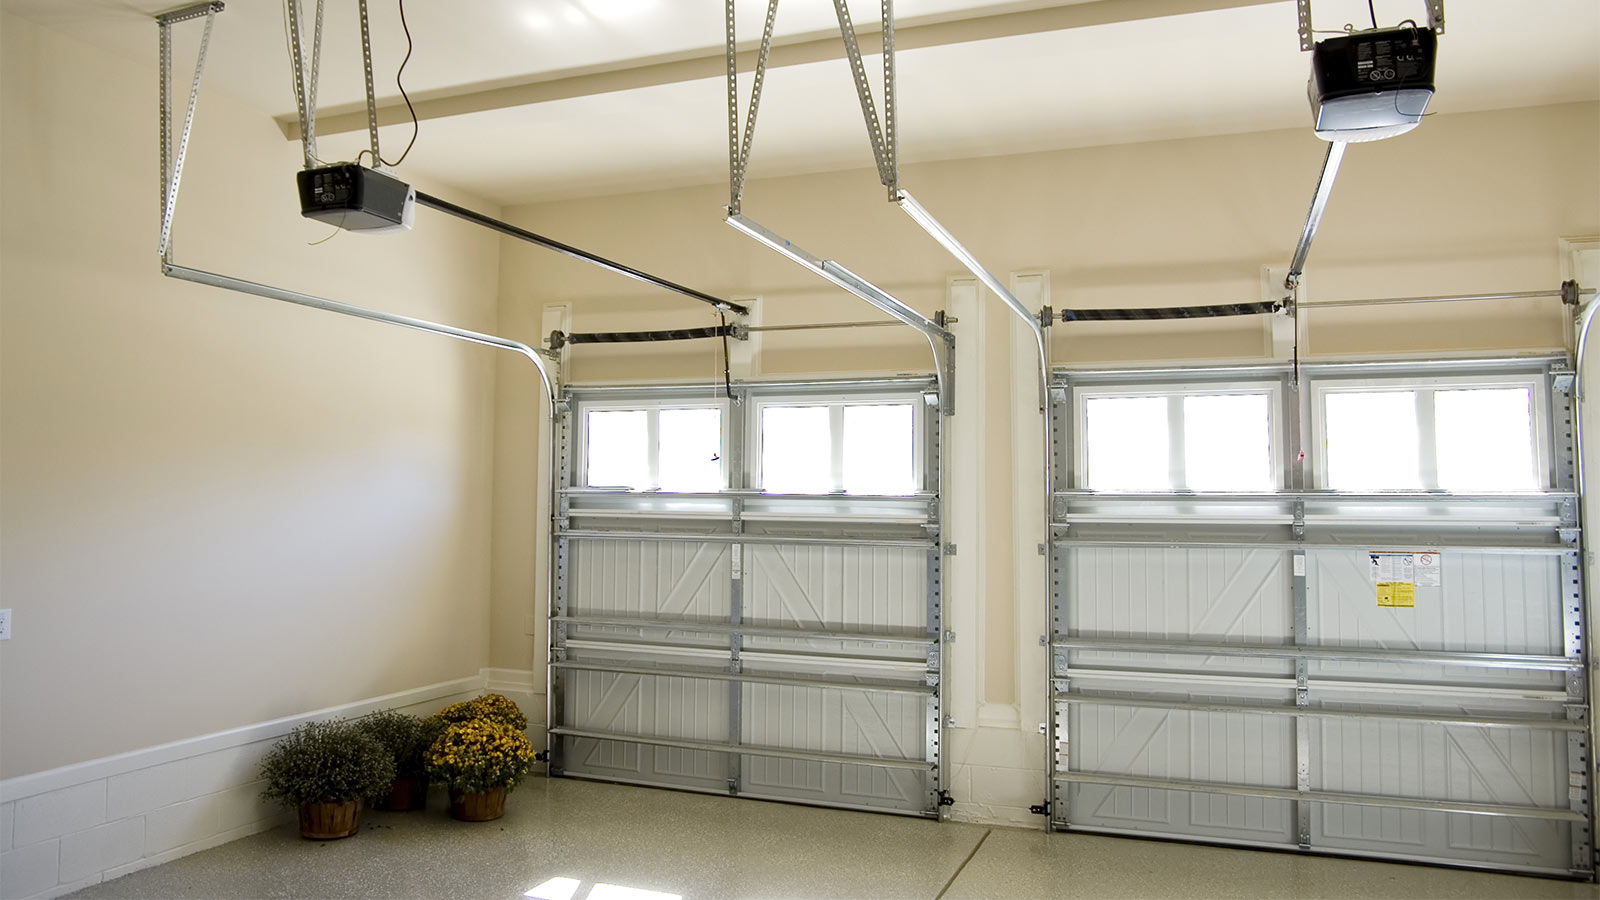 Sectional Garage Doors from Electric Roller Garage Doors East London suppliers.